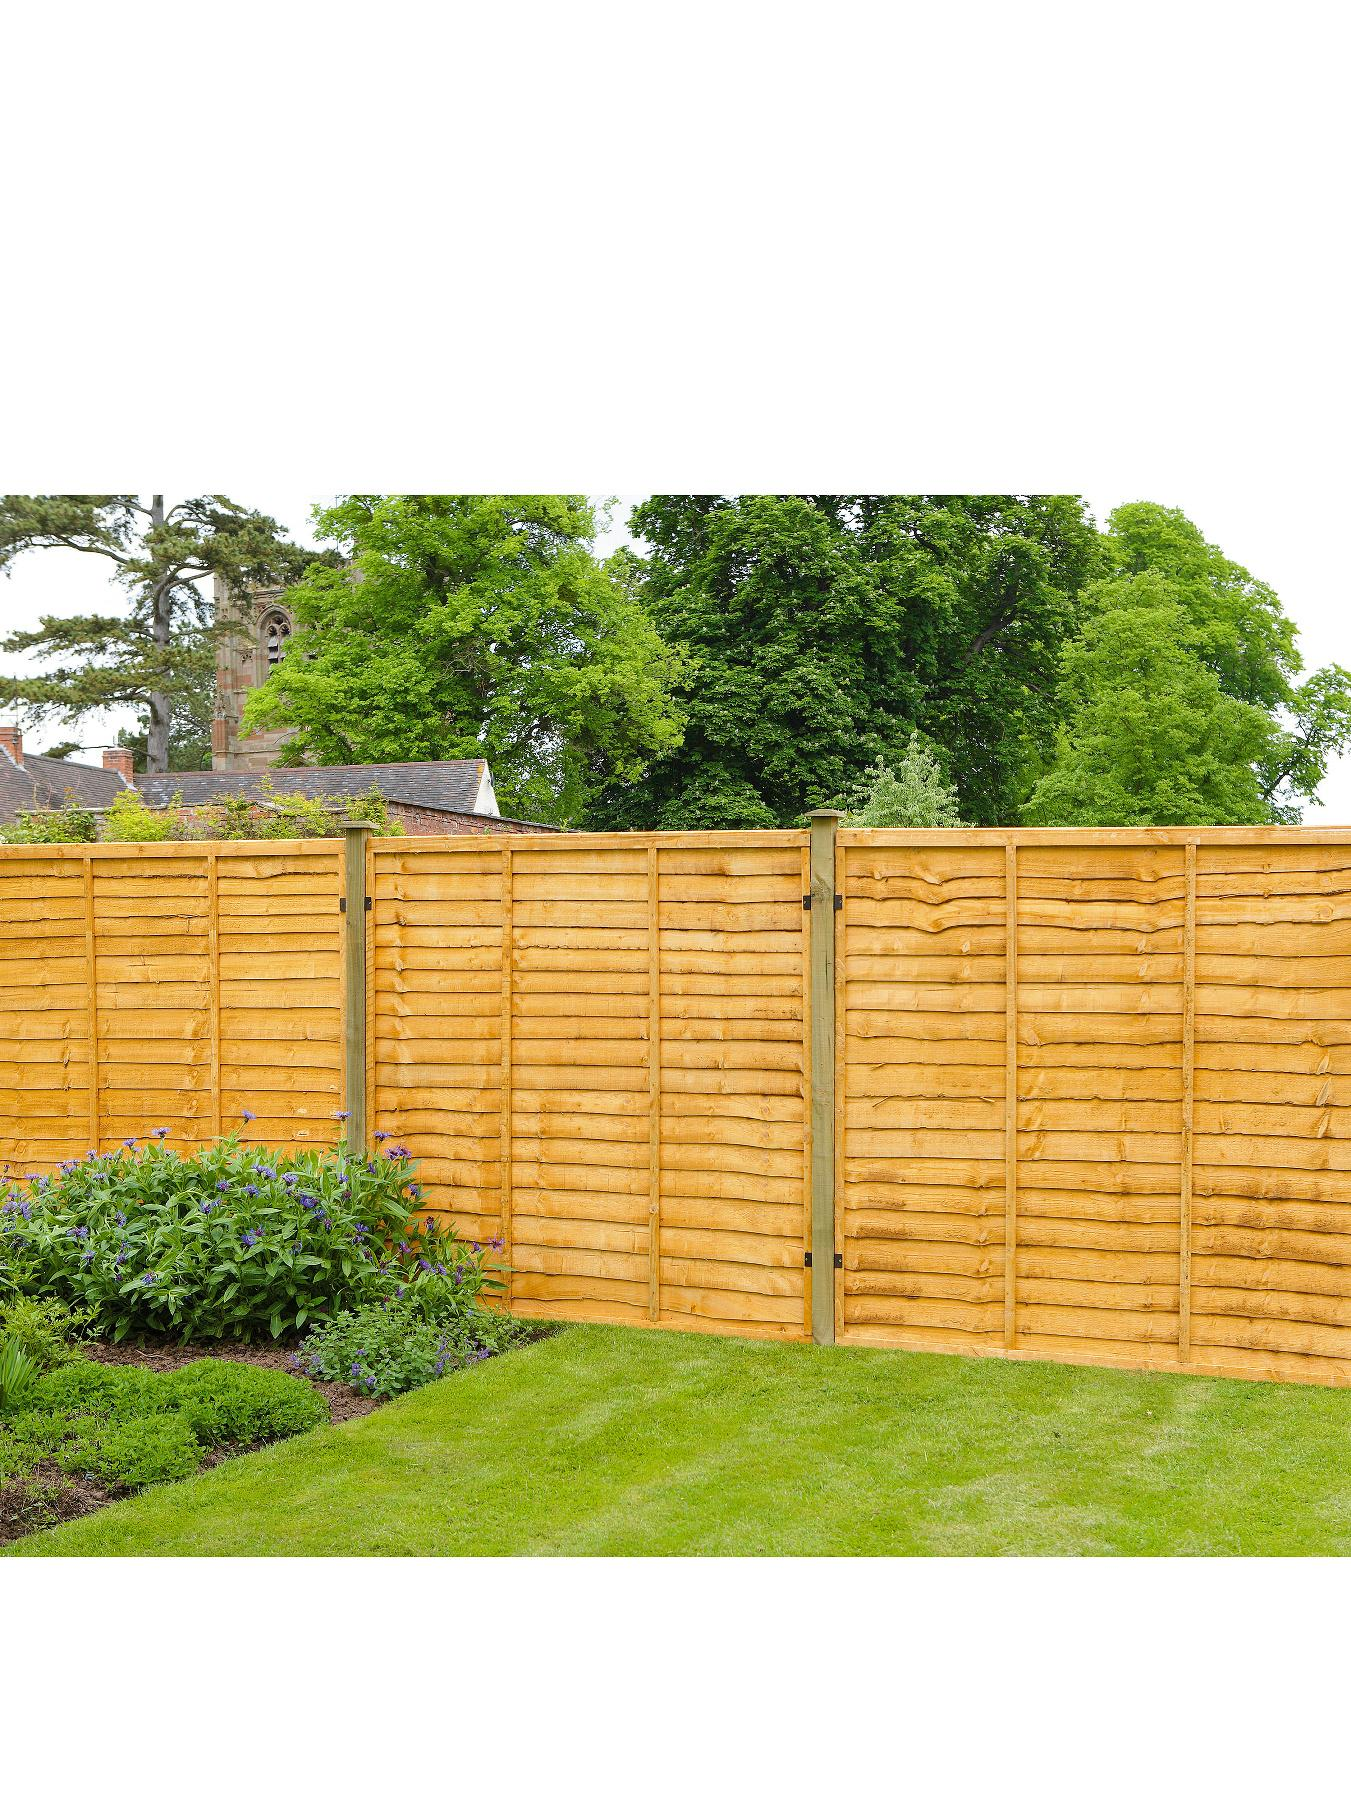 Trade Lap Panel 6 x 6ft Fence Panels (10 Pack)